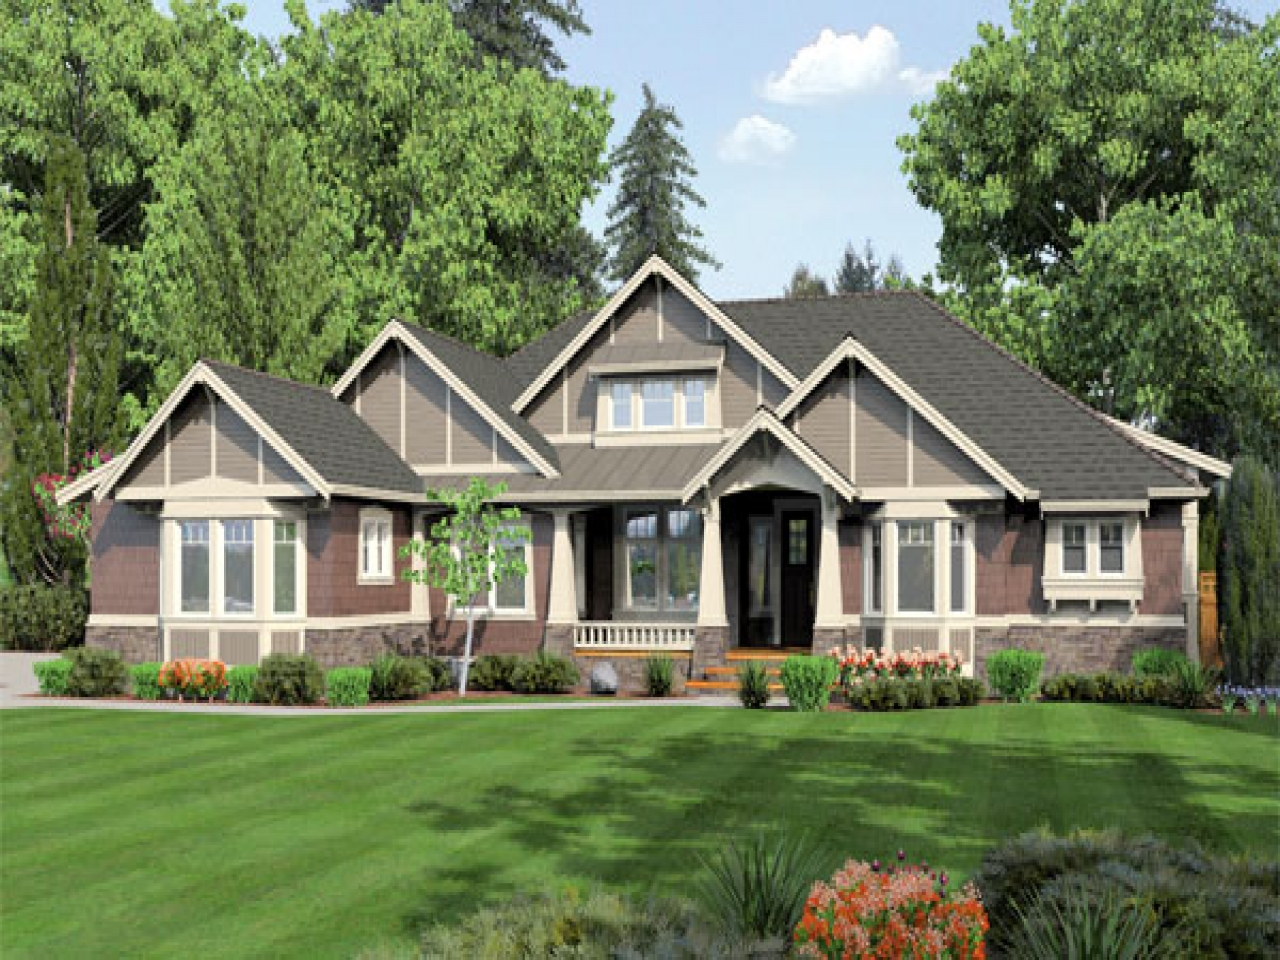 One story ranch house plans simple one story houses one for Simple one story ranch house plans